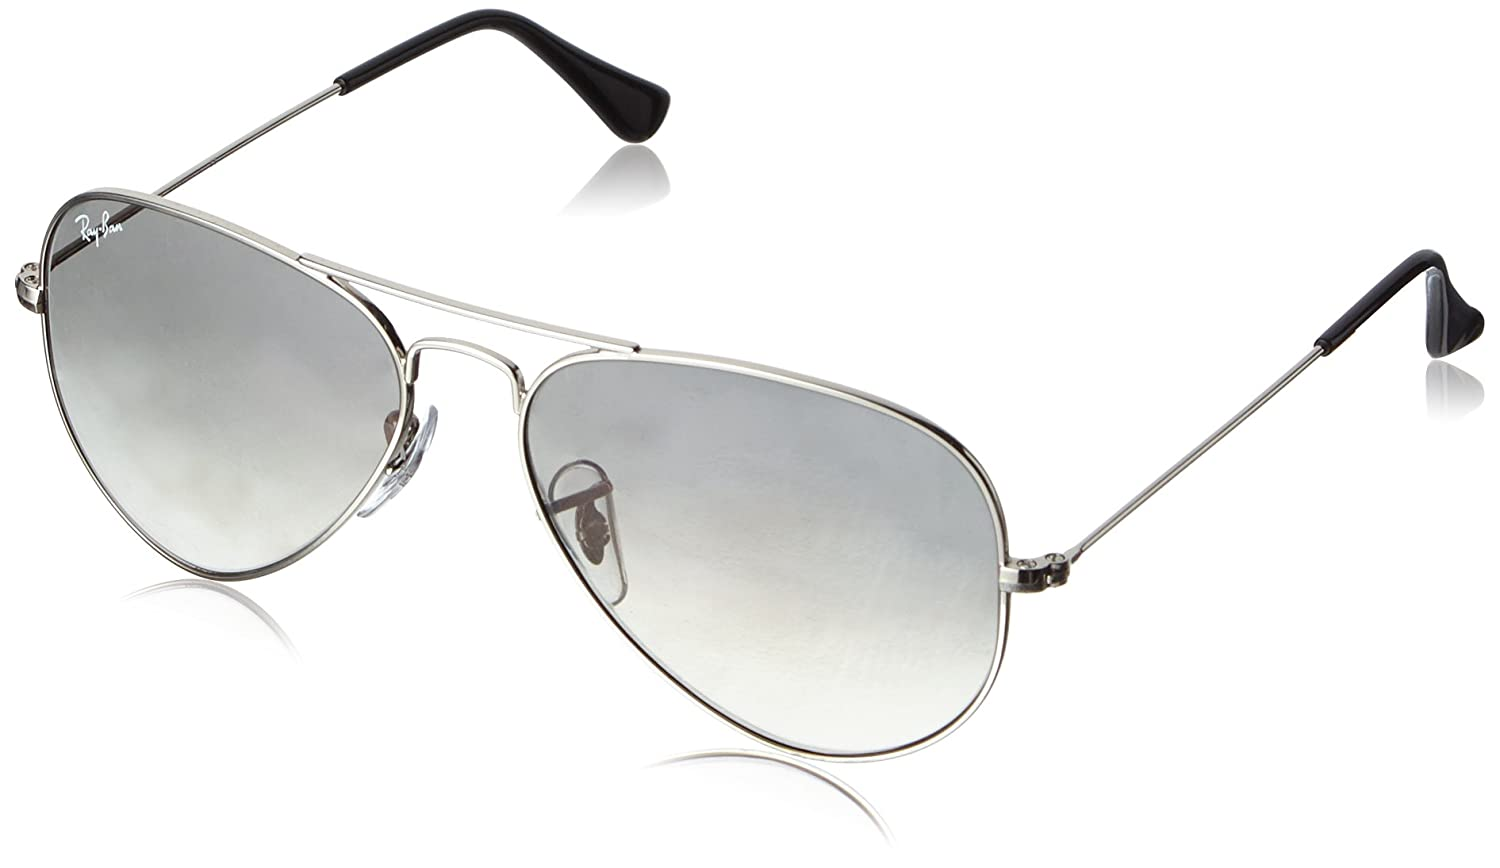 ray ban aviator rb3025 large metal  Amazon.com: Ray-Ban 0RB3025 Aviator Metal Non-Polarized Sunglasses ...